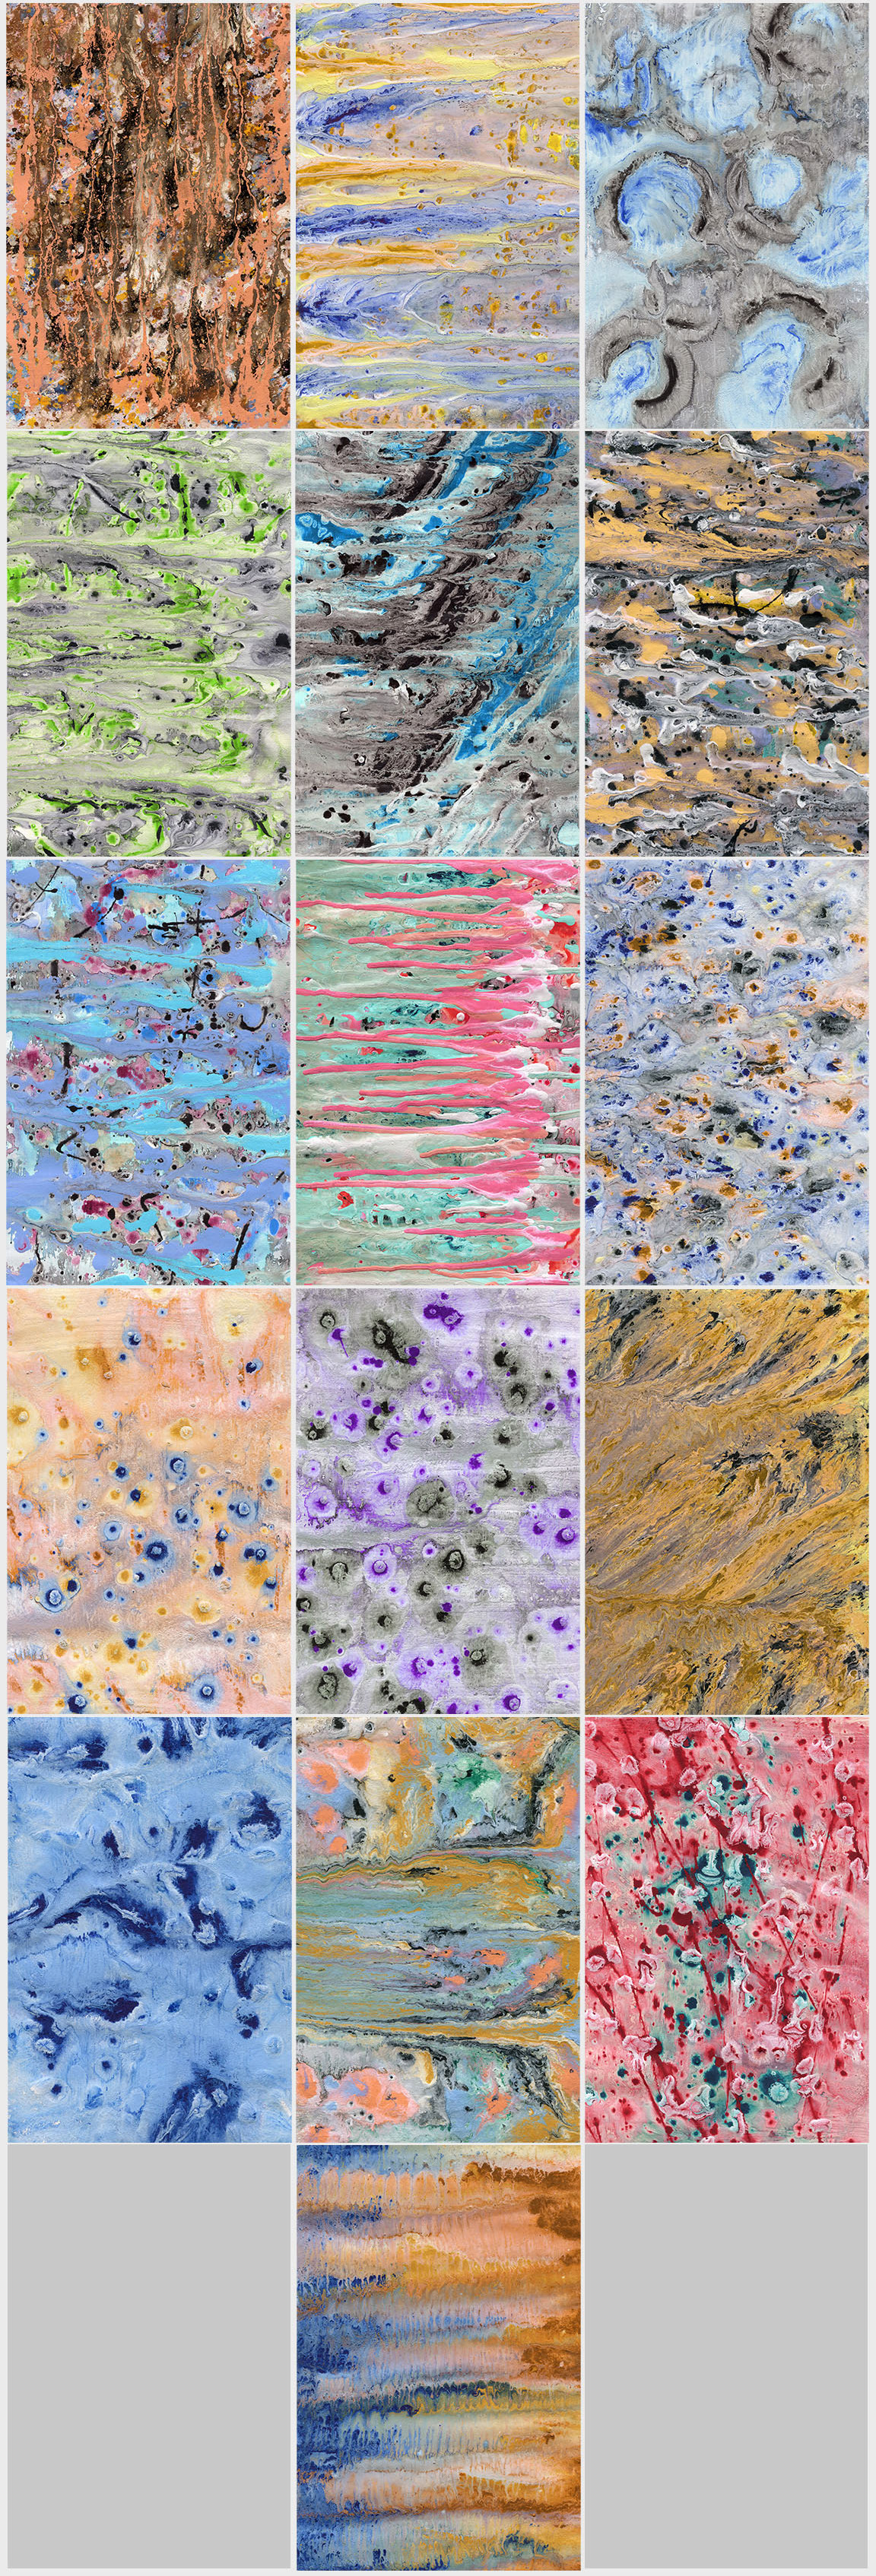 Abstract Paint Backgrounds Vol. 8 example image 9